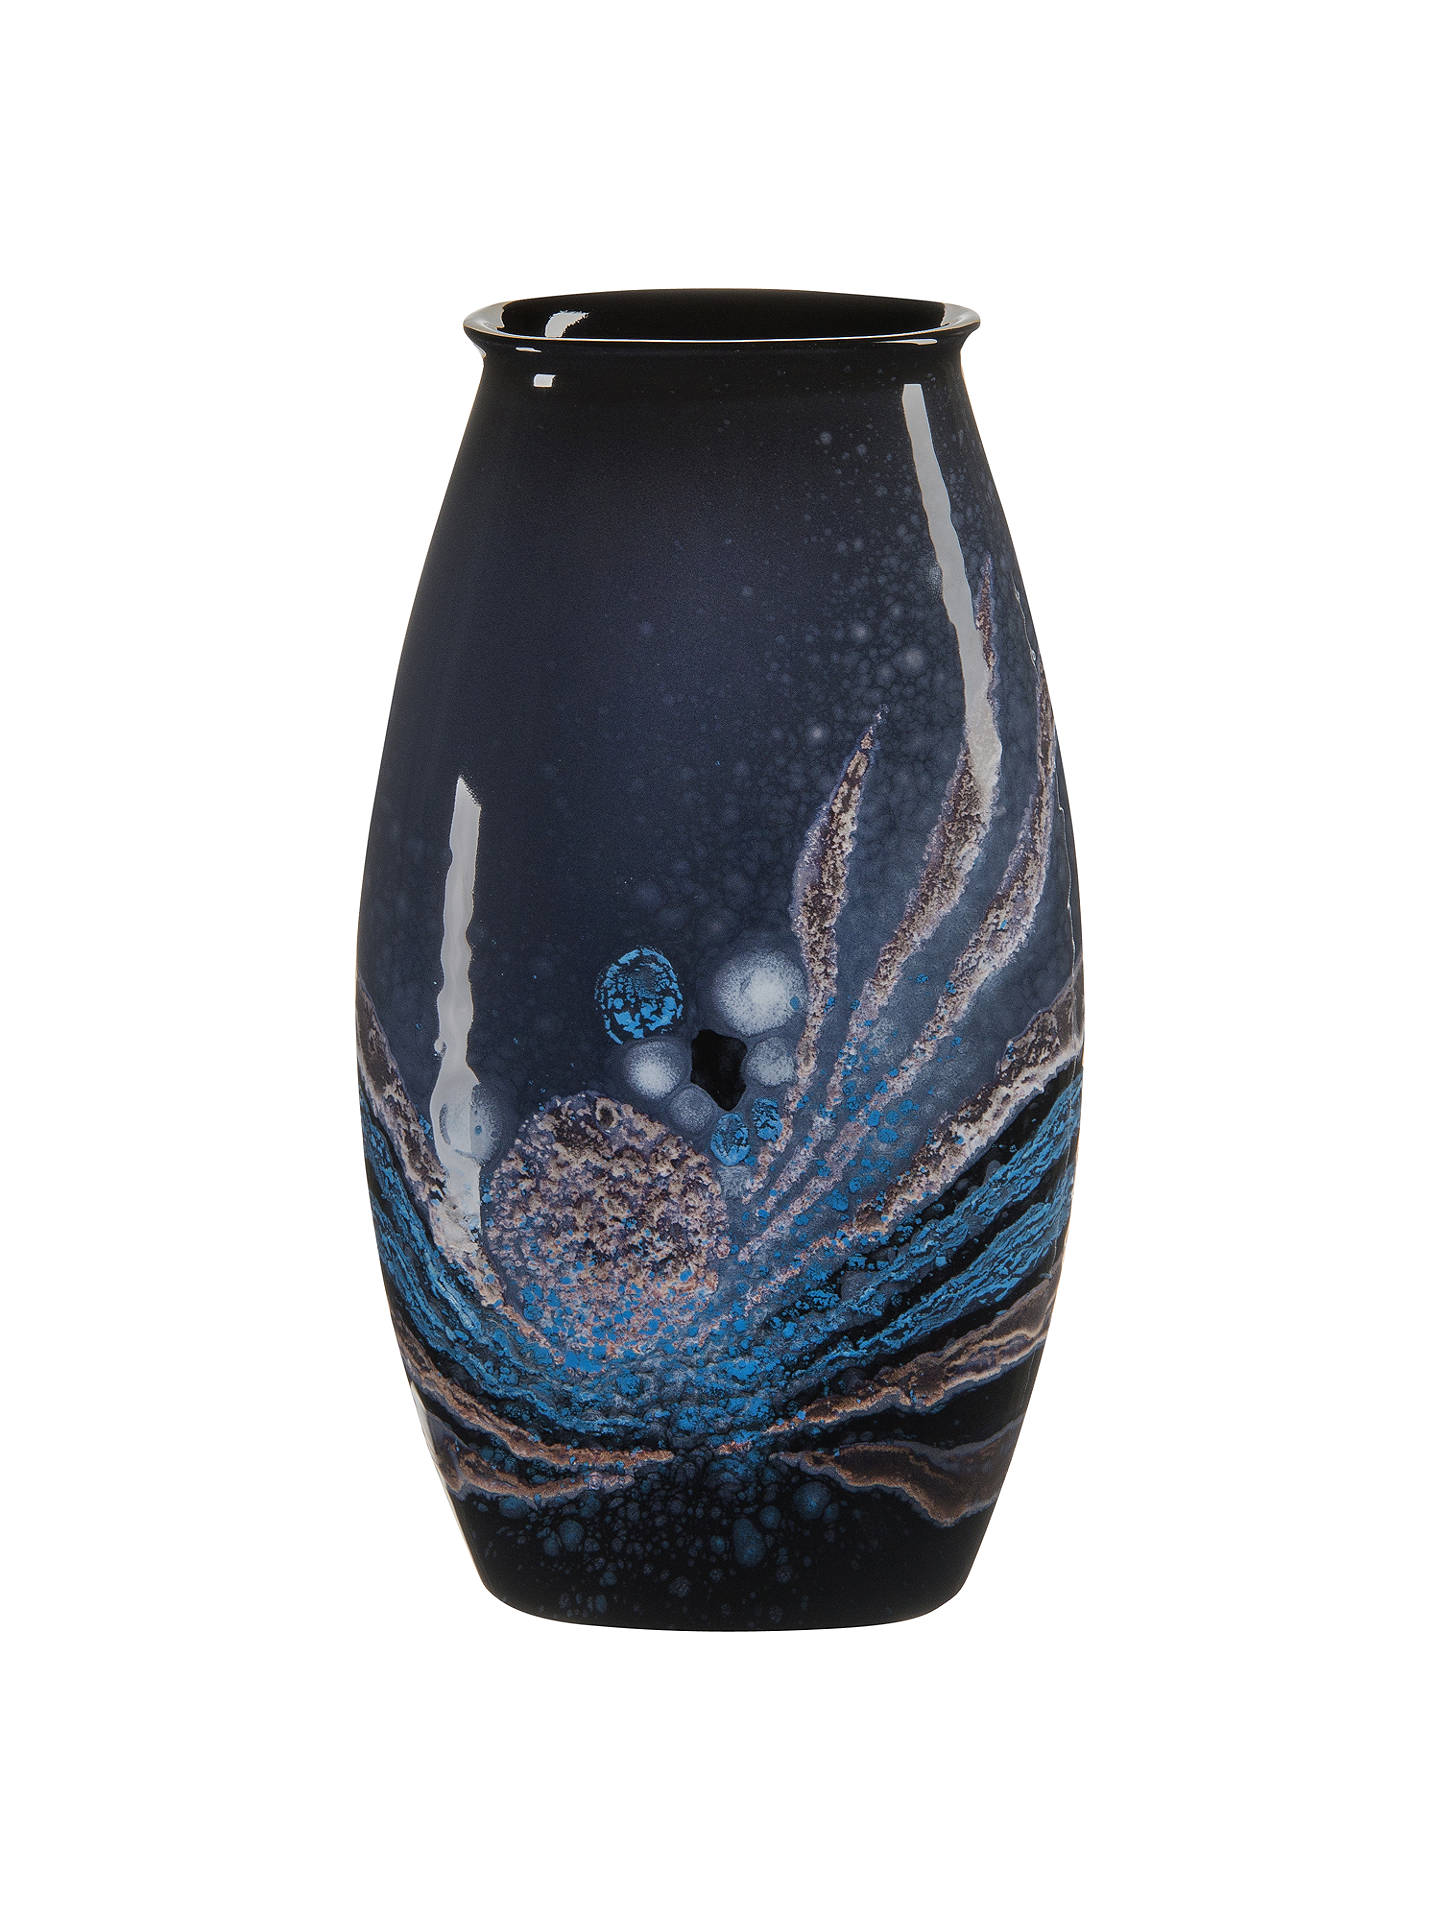 BuyPoole Pottery Celestial Manhattan Vase, H26cm, Grey/ Blue Online at johnlewis.com